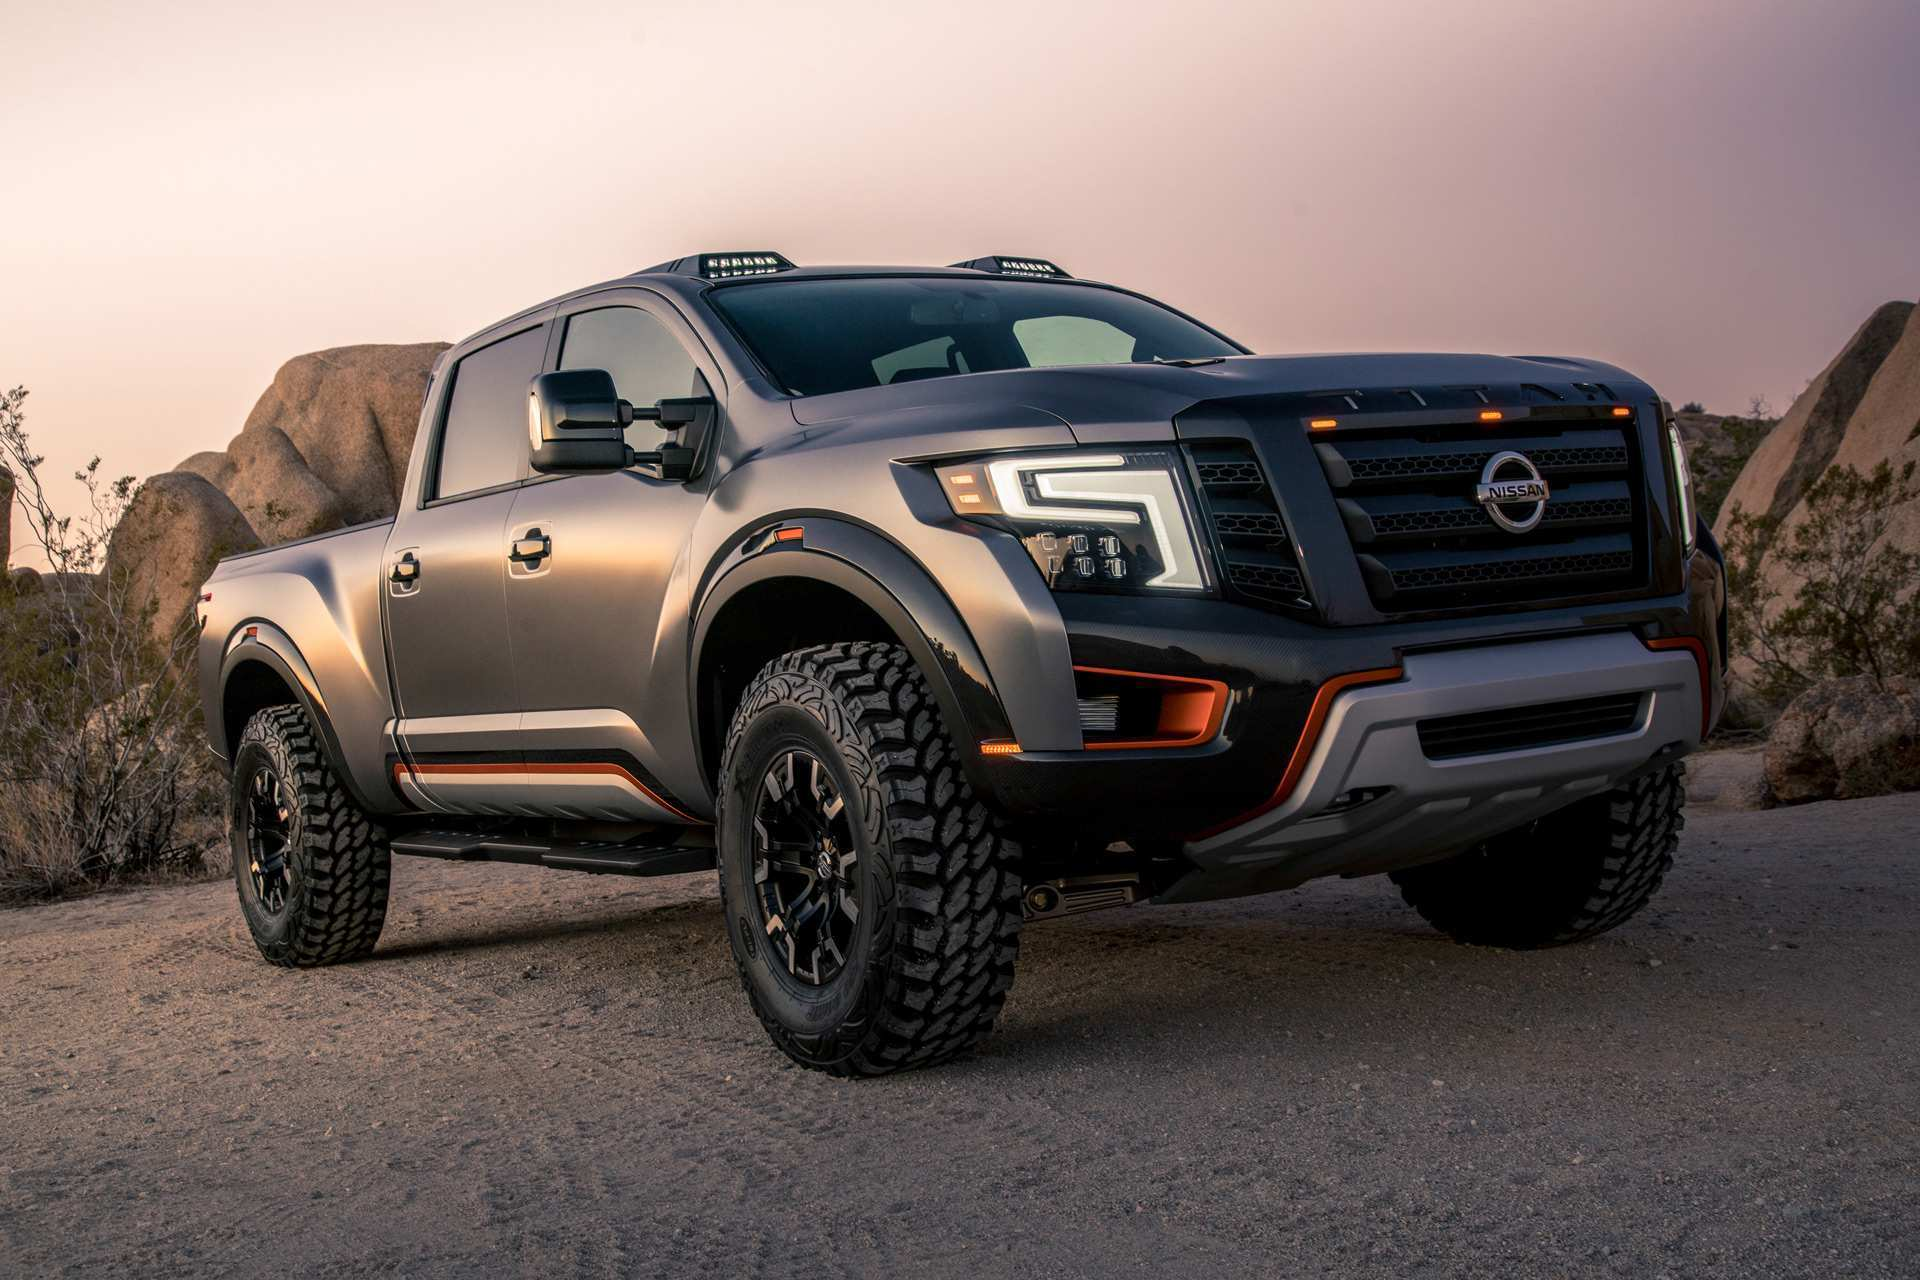 38 New 2020 Nissan Frontier Price Design And Review